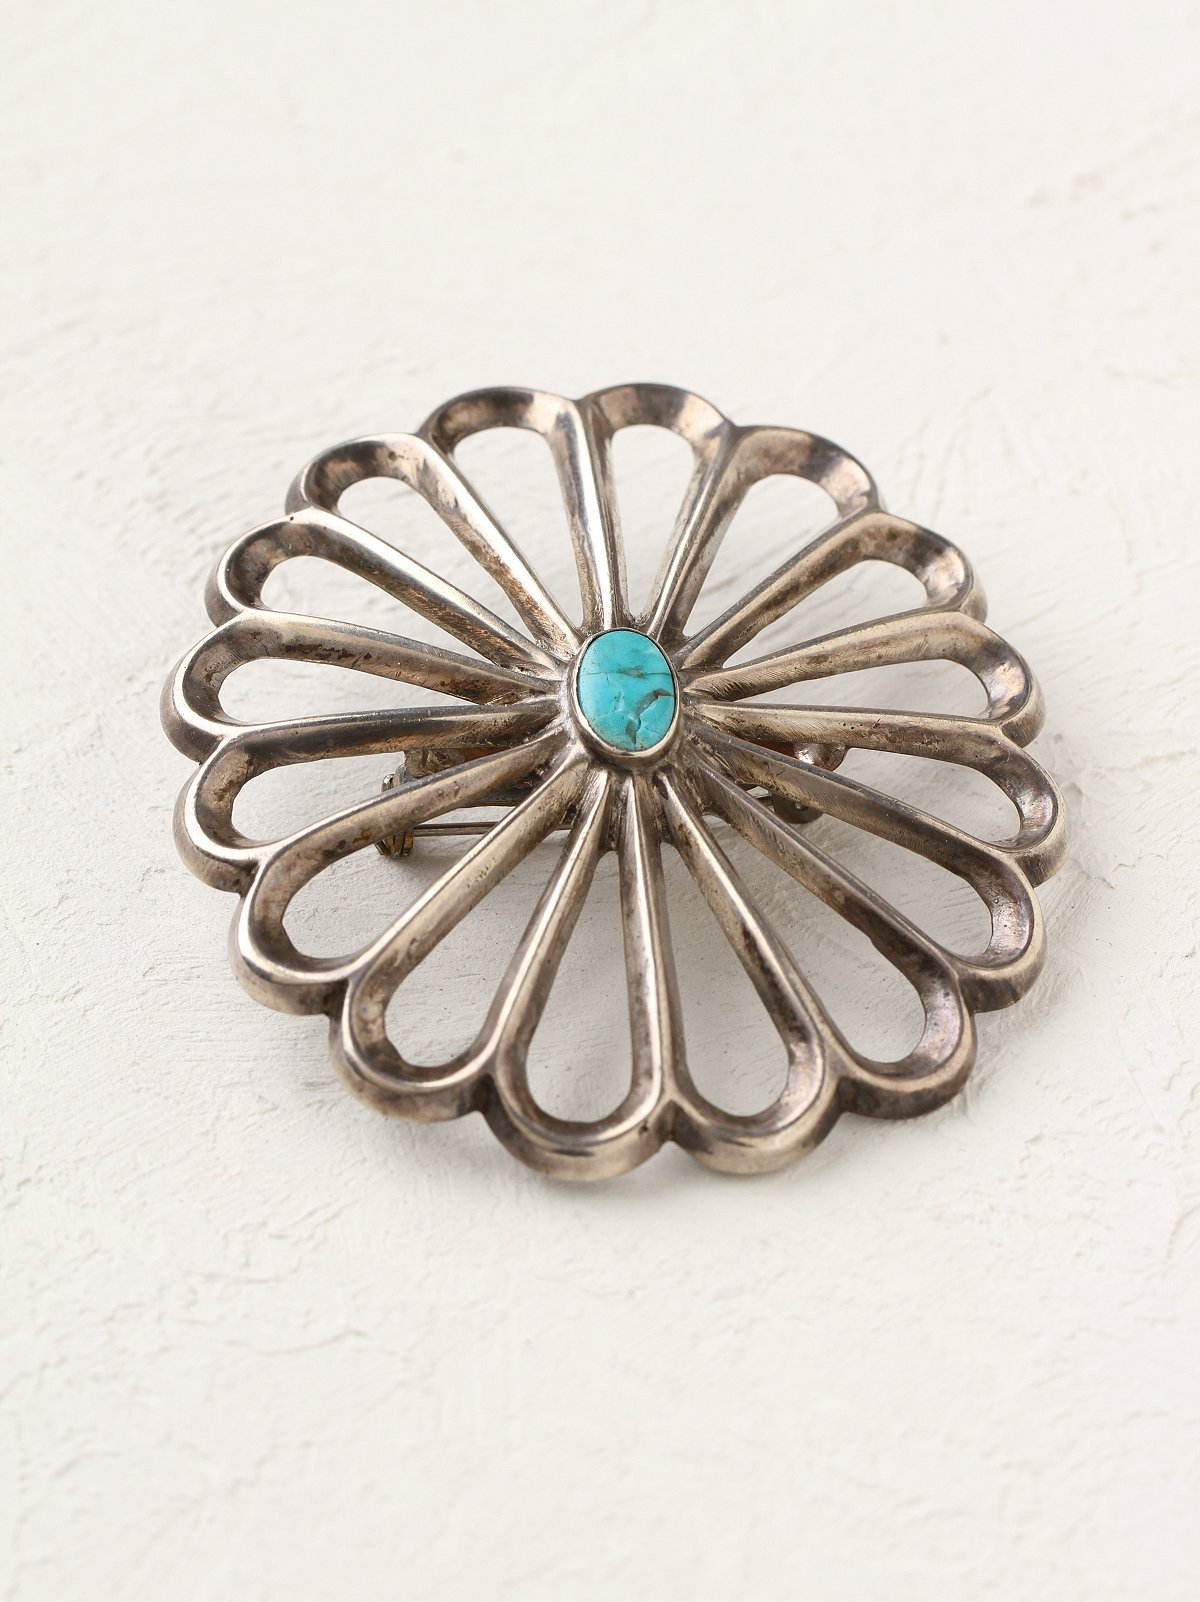 Vintage Silver Turquoise Pin